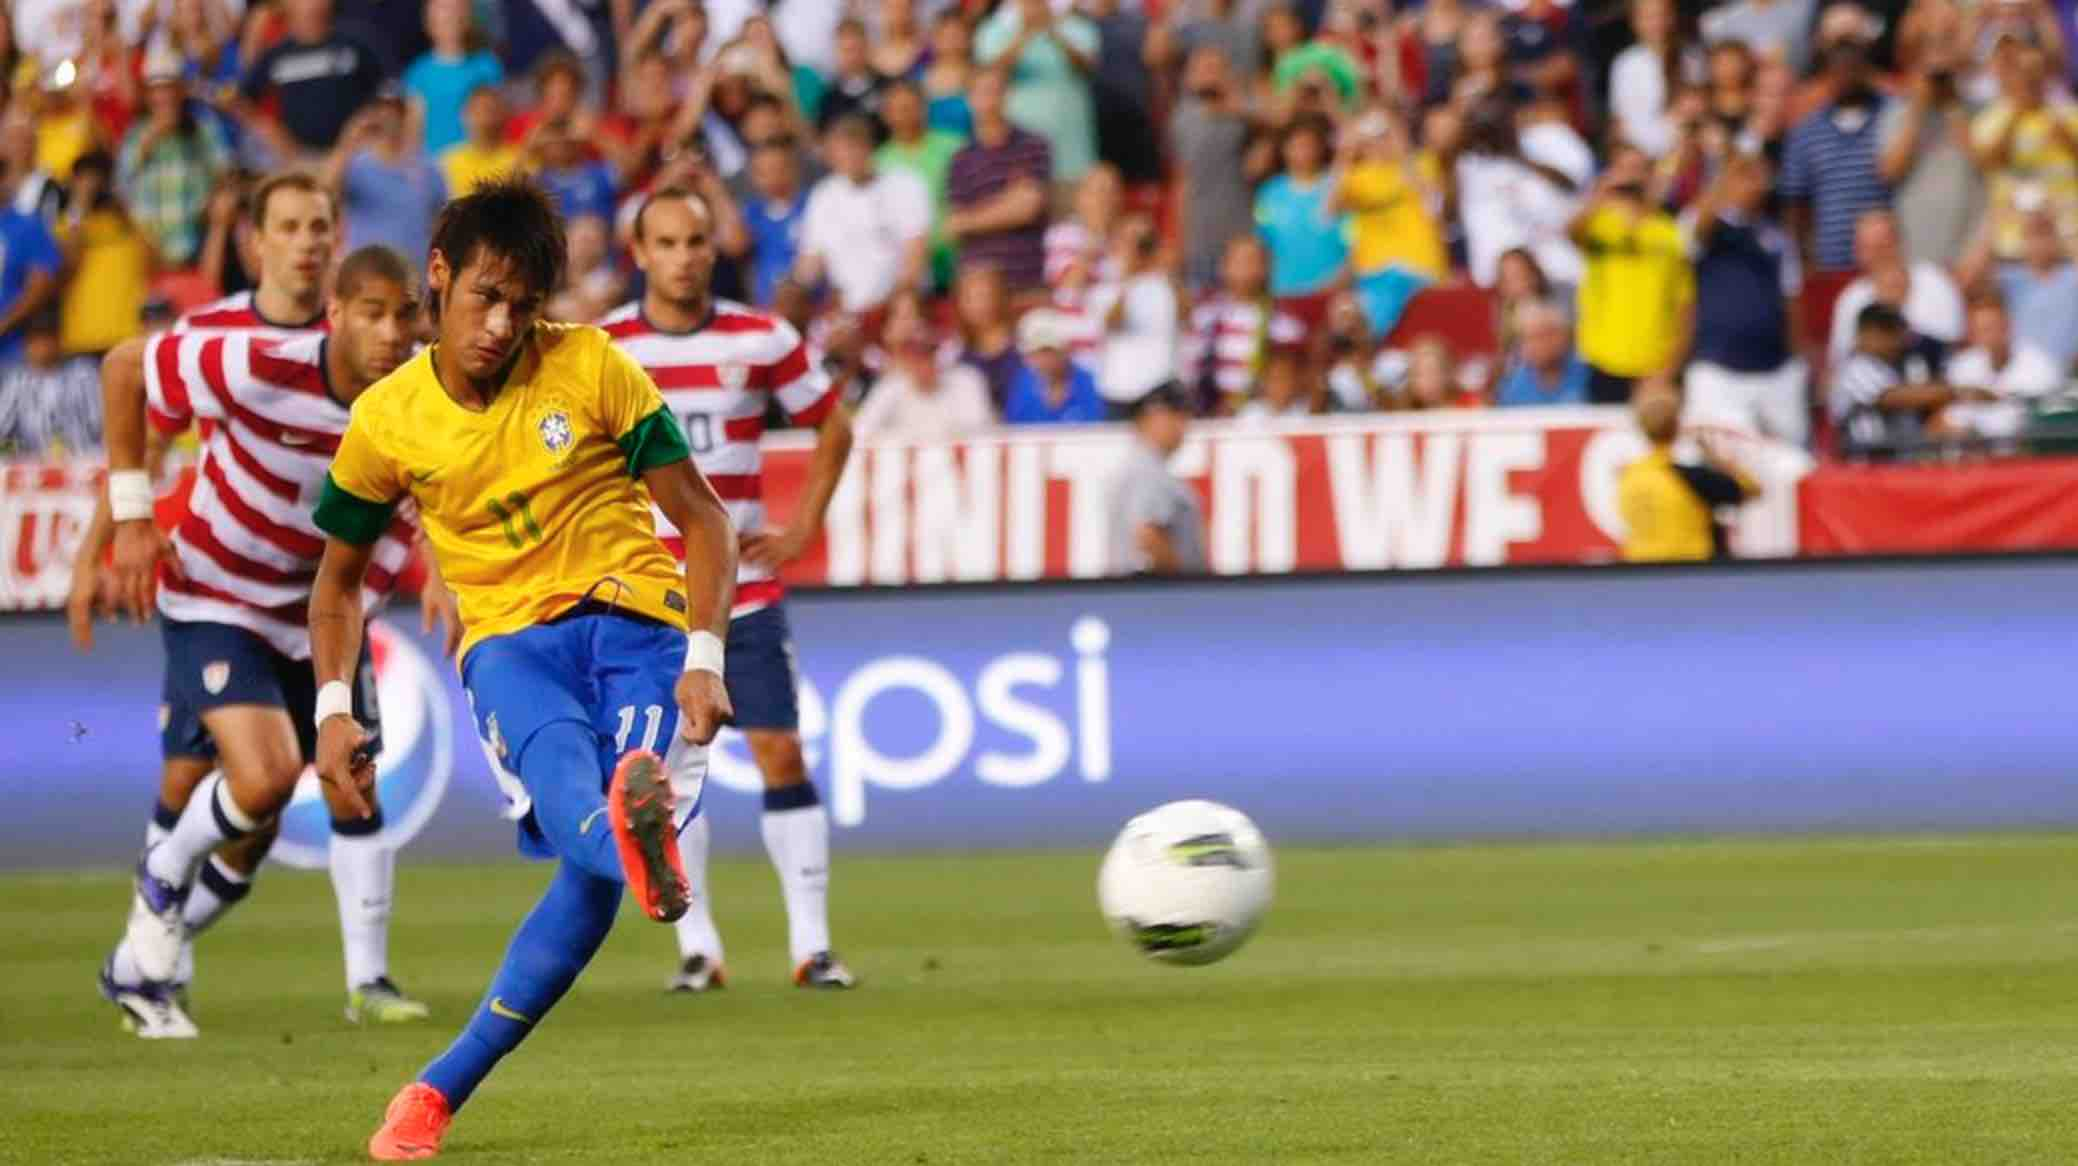 USMNT vs. Brazil friendly scheduled for September